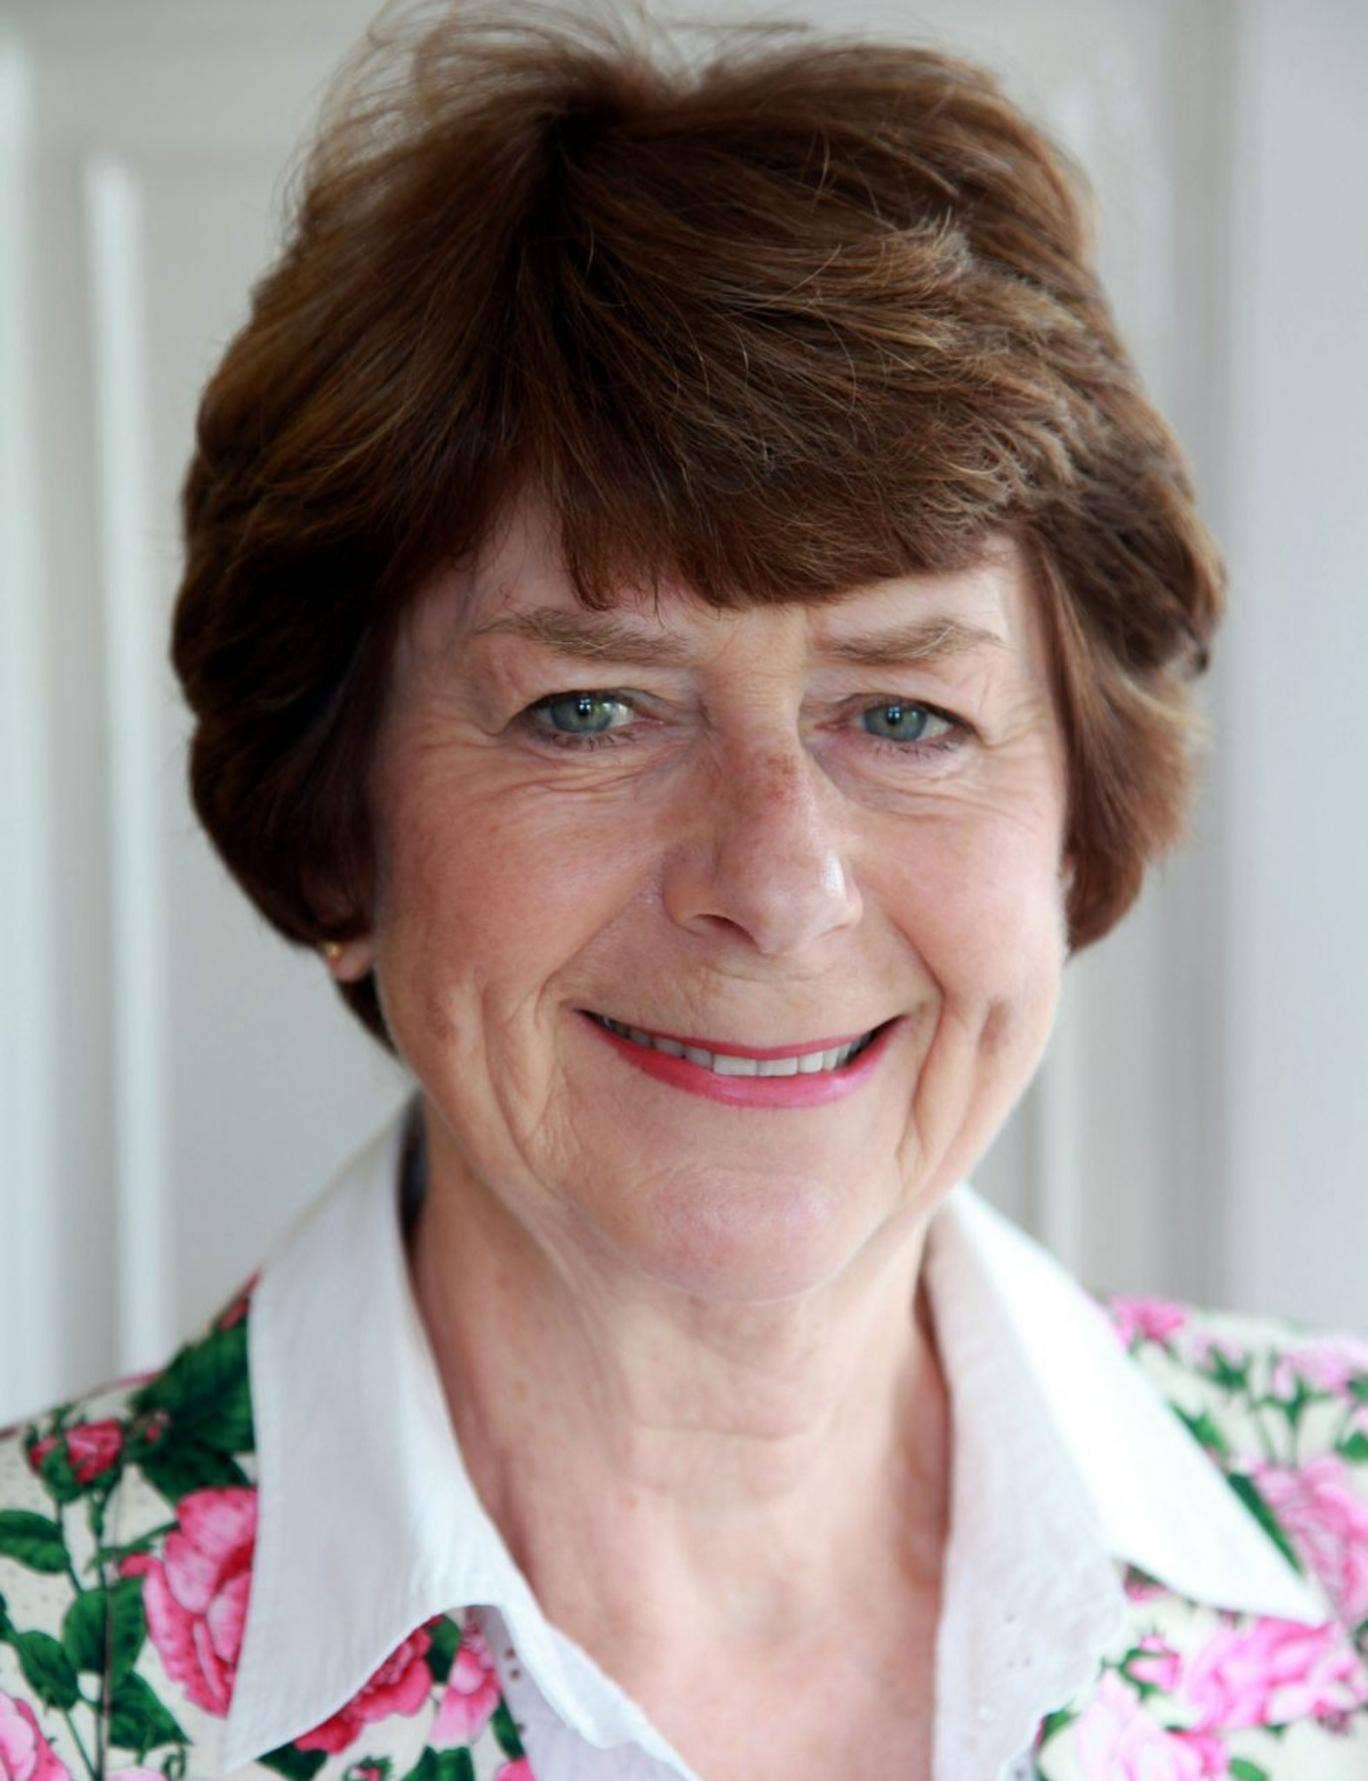 'I loved About Time and wished there were more light films of this type': Pam Ayres